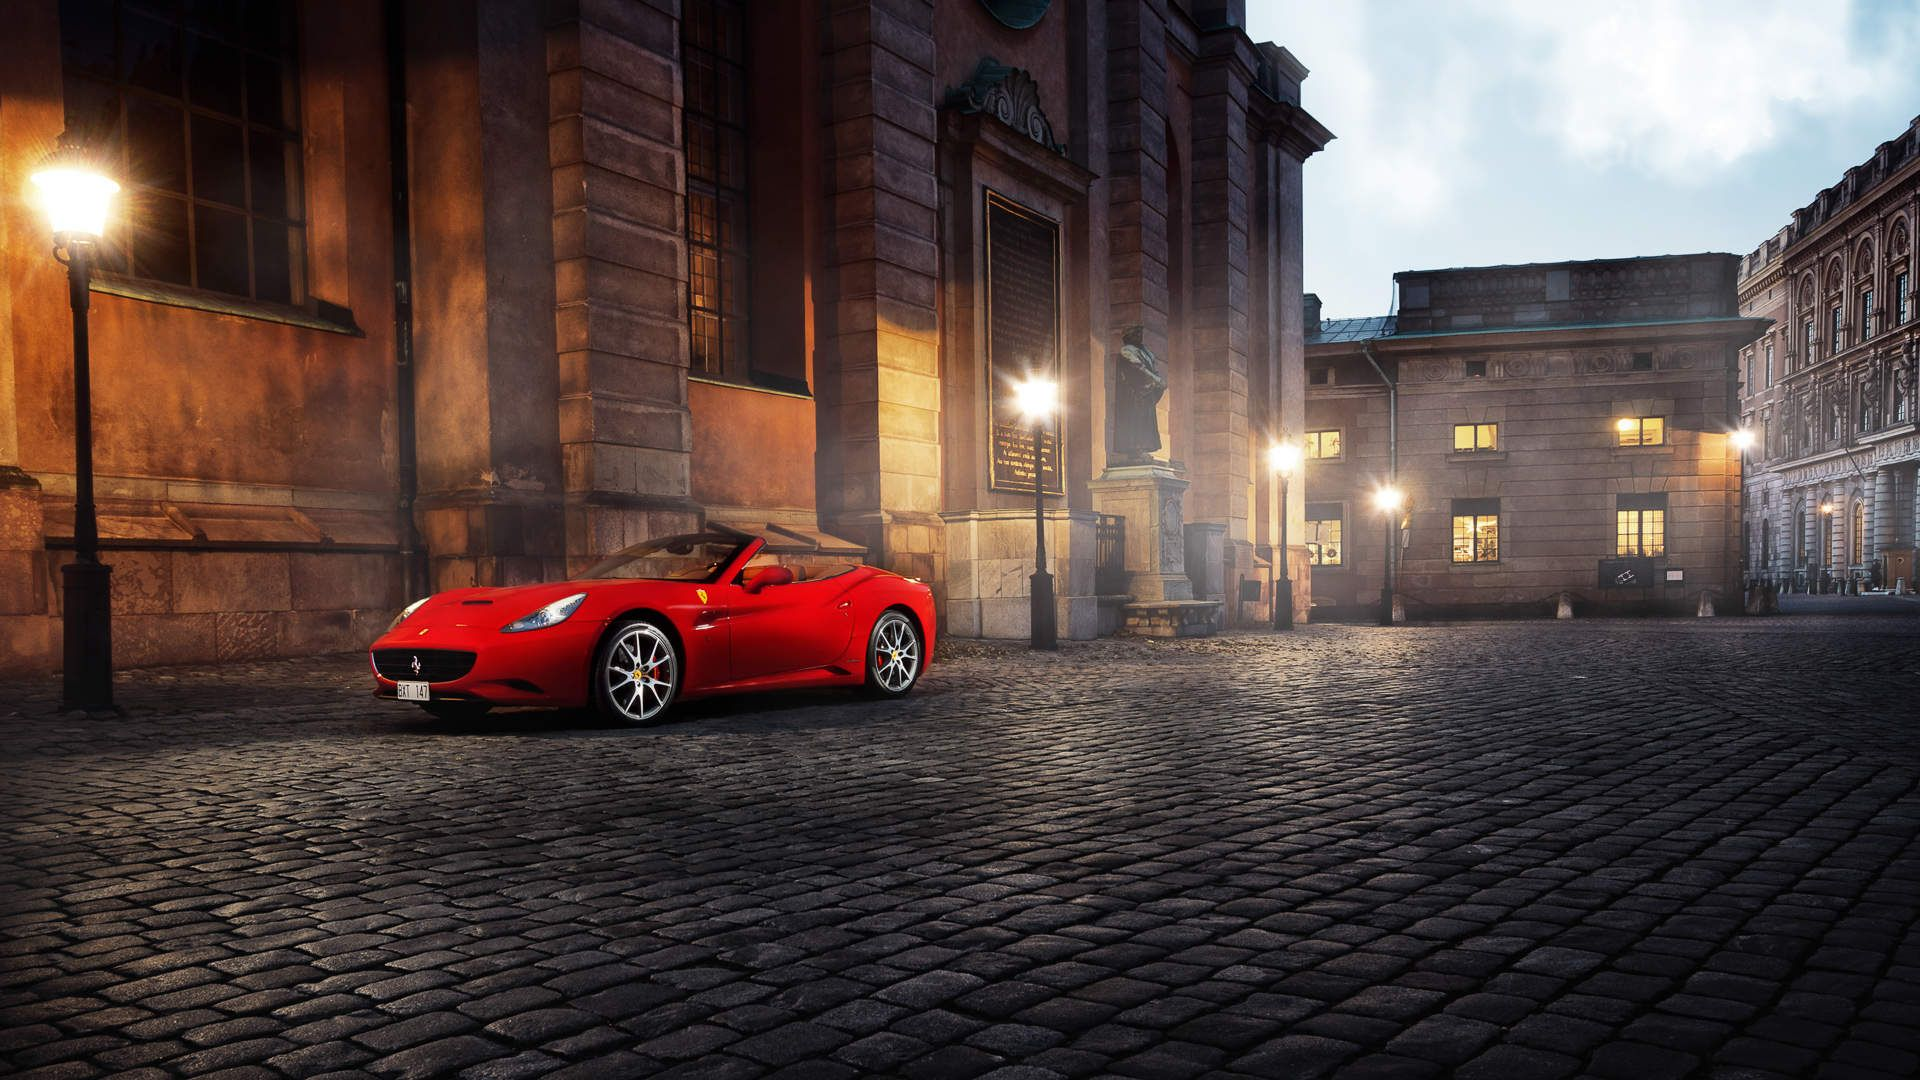 The Most Beautiful Automotive Photography You'll See This ...